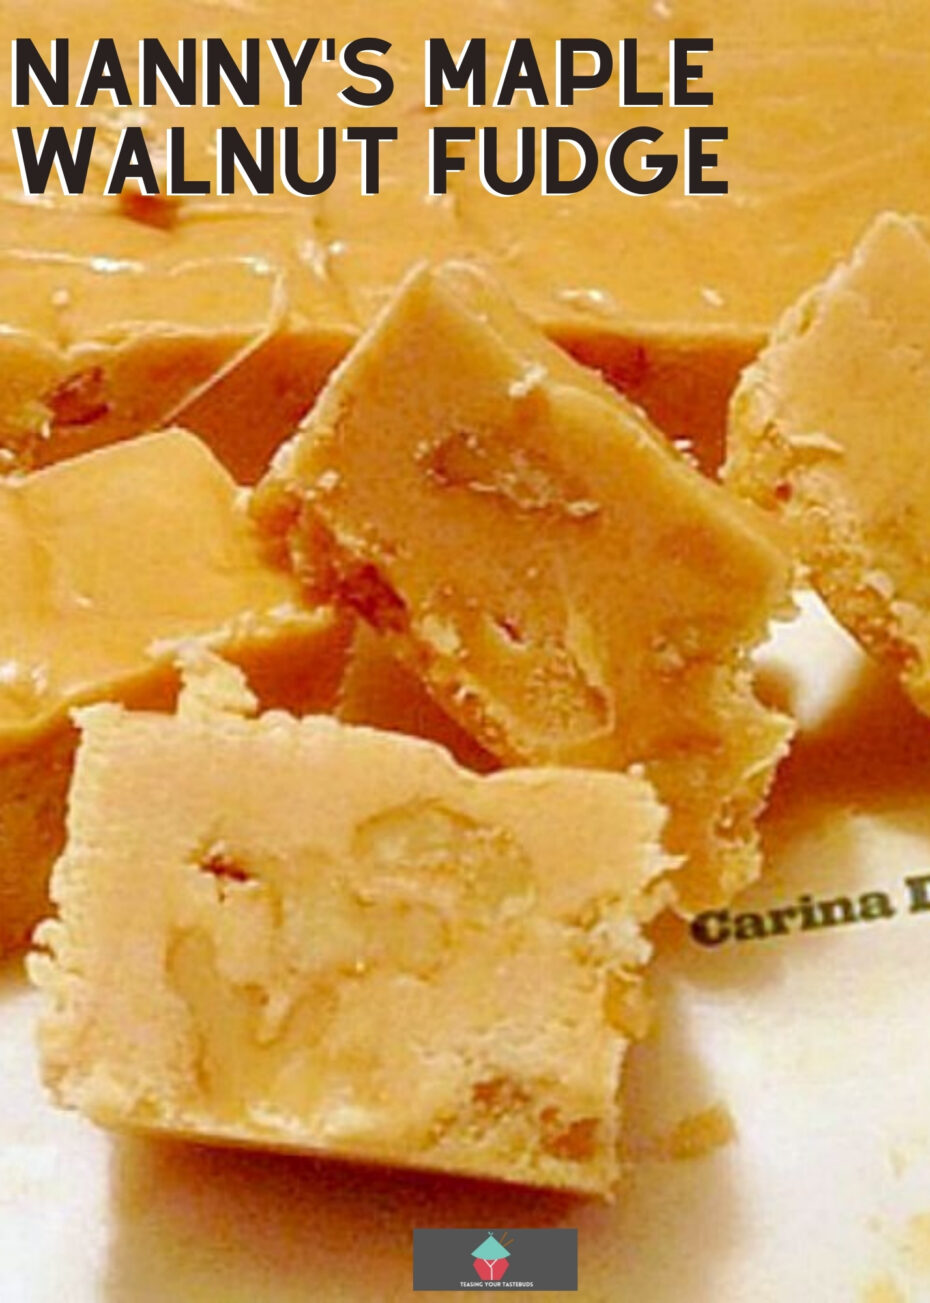 Nanny's Maple Walnut Fudge, delicious creamy pieces of maple syrup infused fudge with walnuts throughout. Ideal for Christmas and to make in batches for gifts